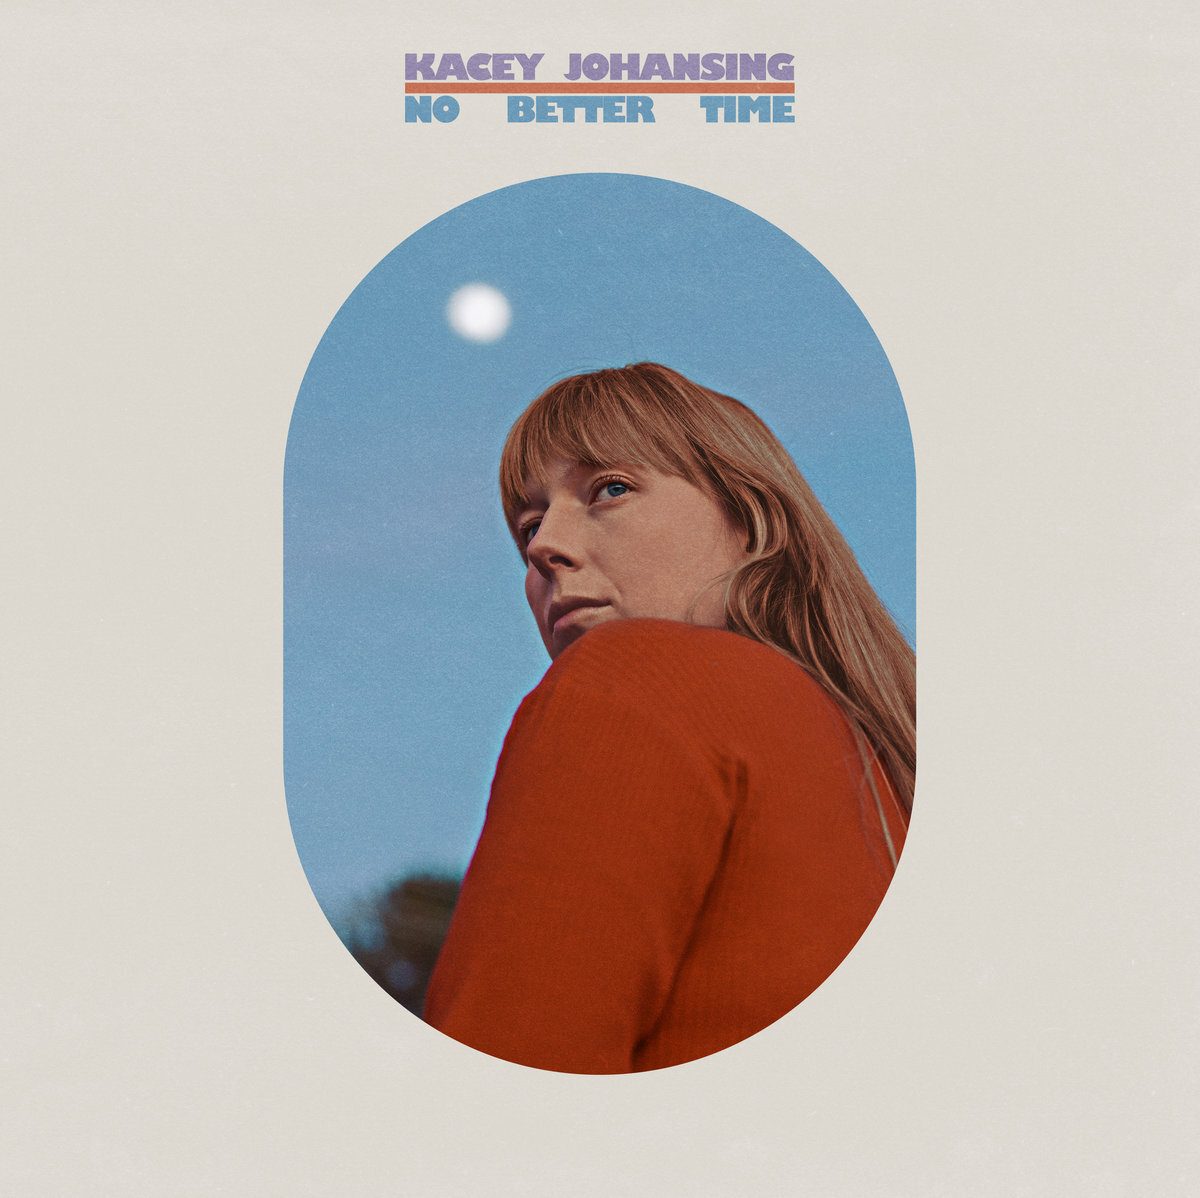 Kacey Johansing - No Better Time (LP)